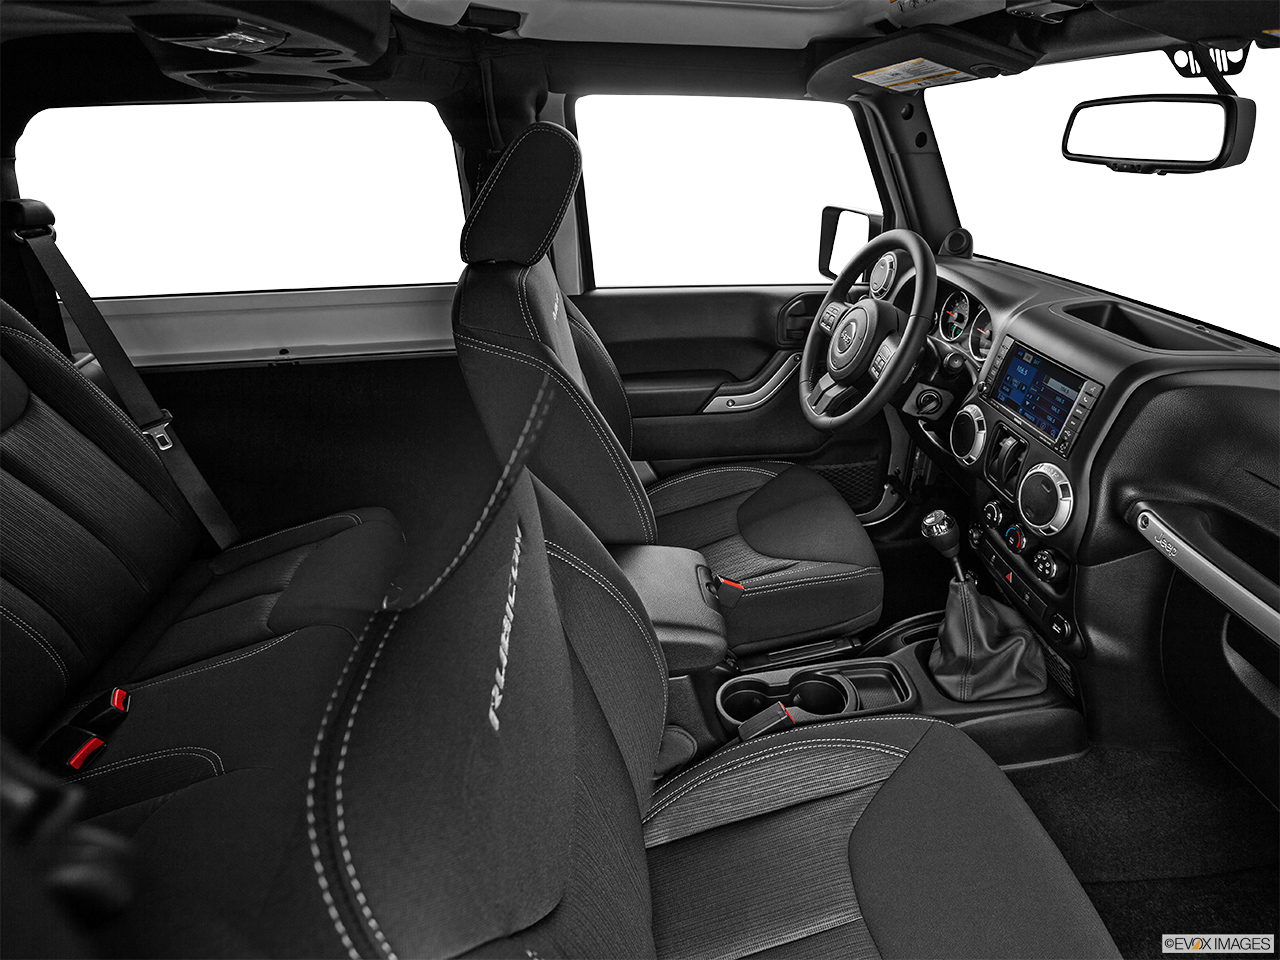 2014 jeep rubicon interior. 2014 jeep wrangler 4wd rubicon x fake buck shot interior from passenger b pillar